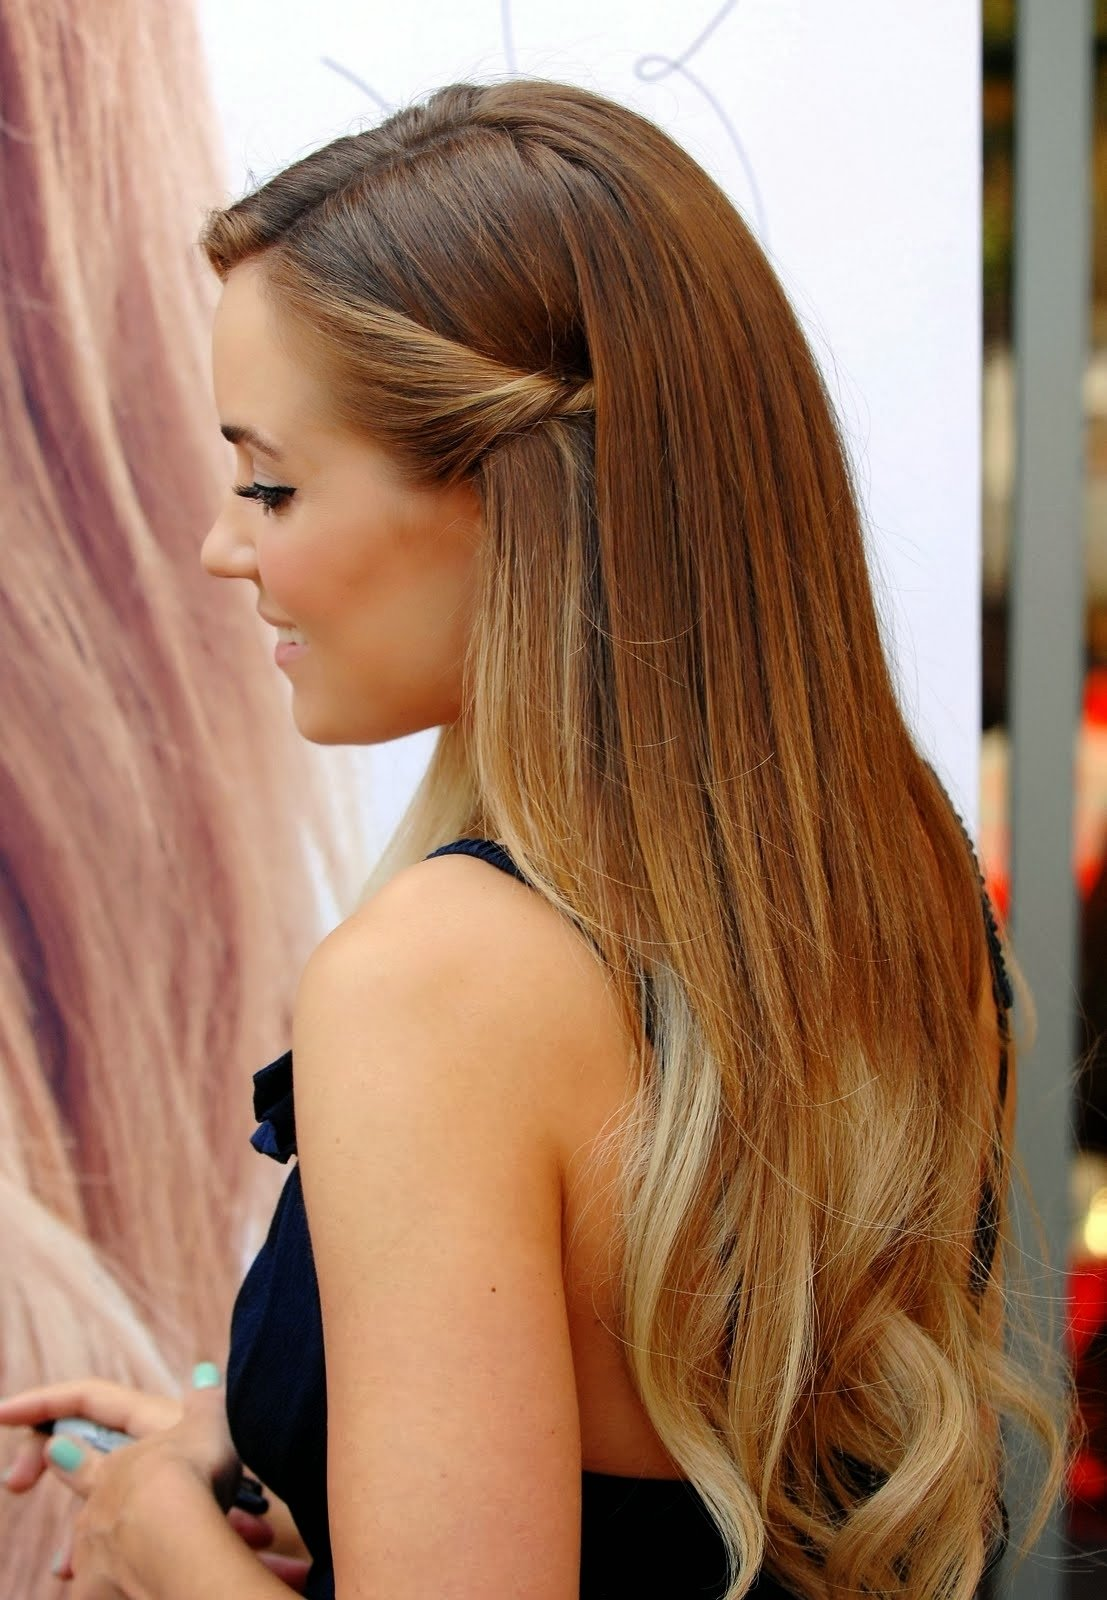 10 Most Recommended Hair Color Ideas For 2013 hair color ideas hair color 2013 2020